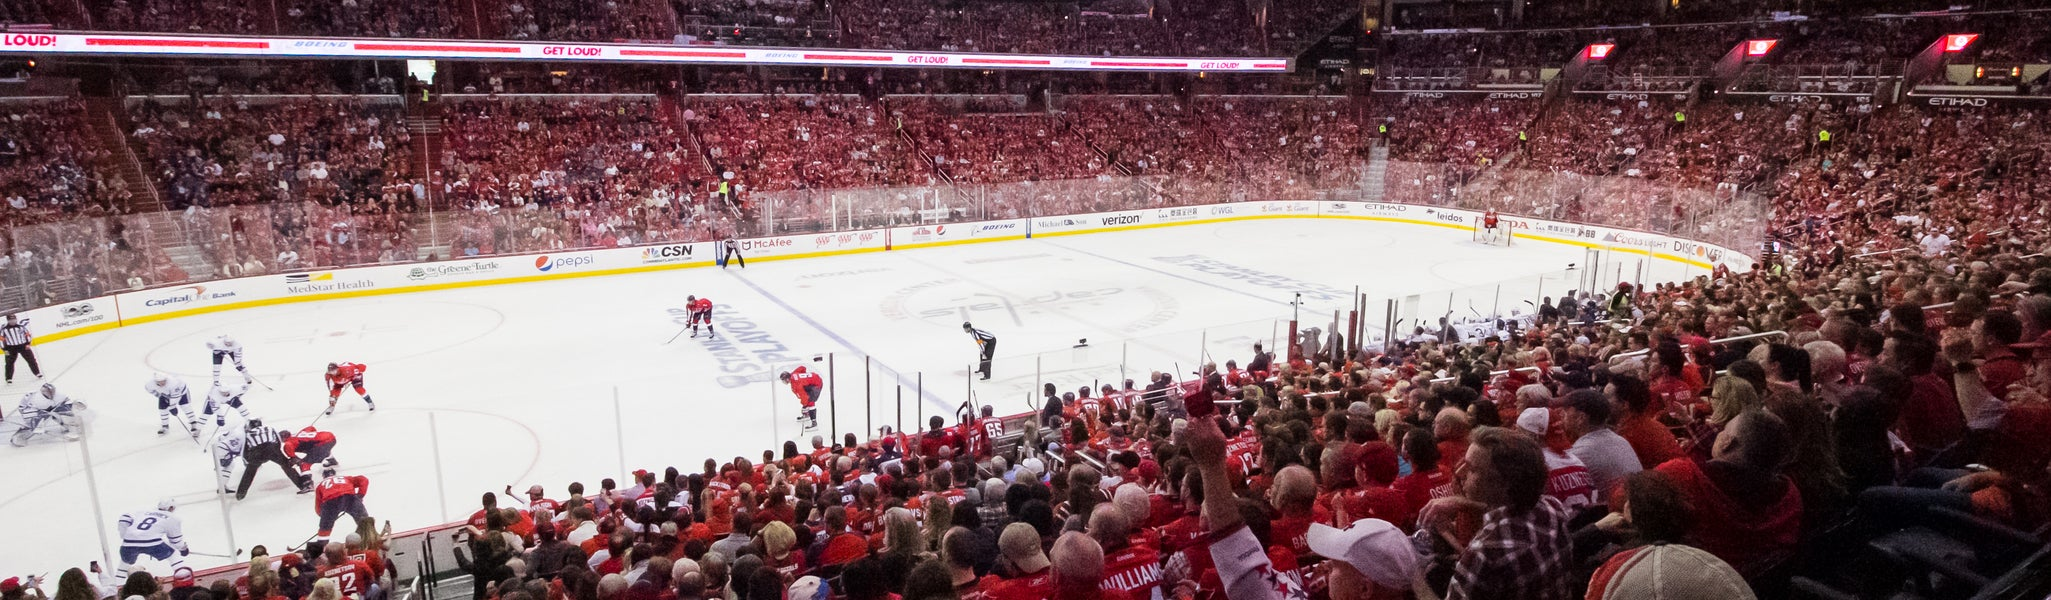 Seat view from LL Center Preferred 121 at Capital One Arena